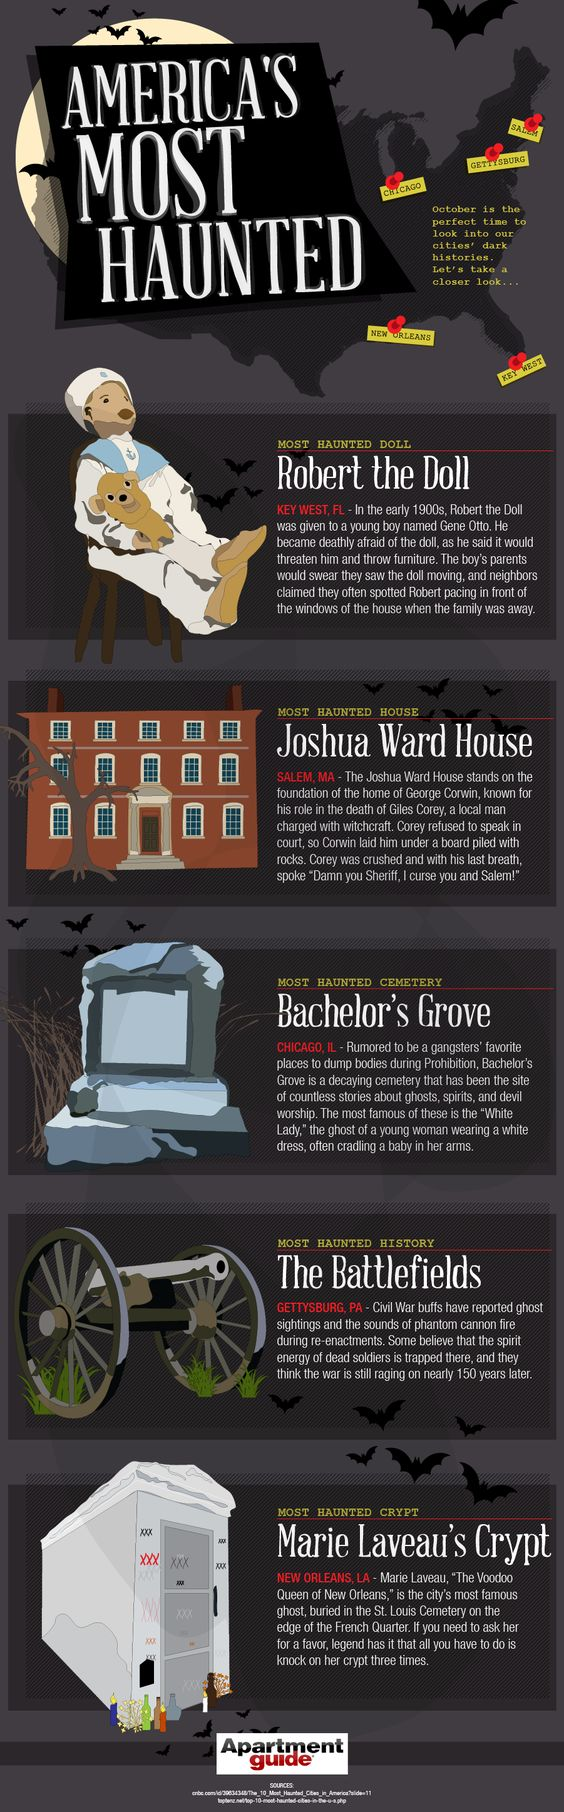 Skip the boring parties this Halloween and go on a haunted adventure. Take a ghost tour or go visit historic battlefields late at night, and see who and what you can channel. If you're feeling brave, visit one of these most haunted spots and try to not get spooked.